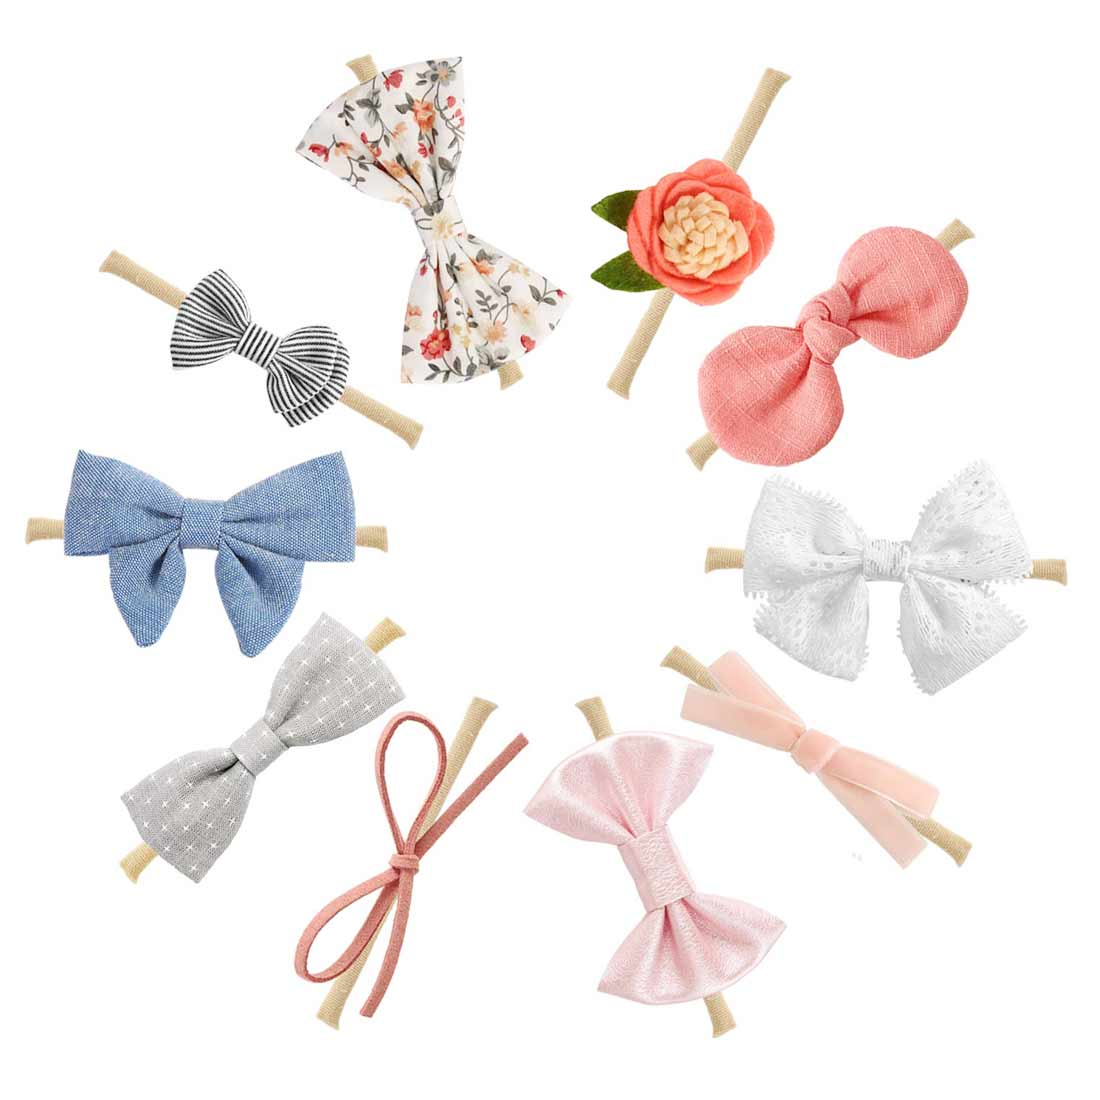 New Baby Girls Bows Headband Stretchy Cloth Headbands For Girls Cute Prints Bows Headband Set Kids Hair Accessories